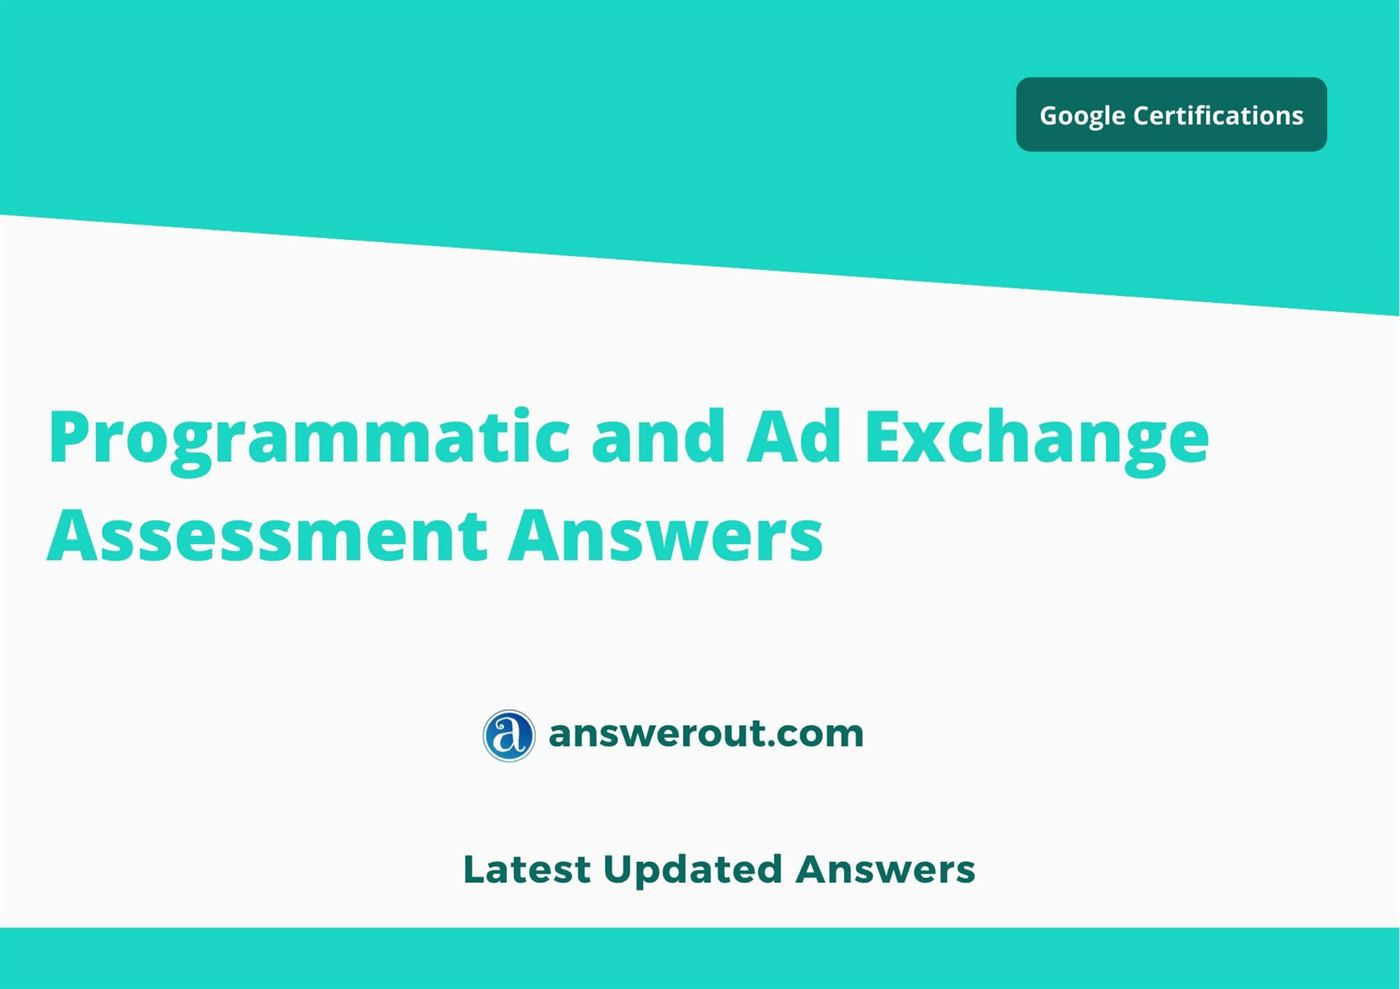 Programmatic and Ad Exchange  Answers 2021